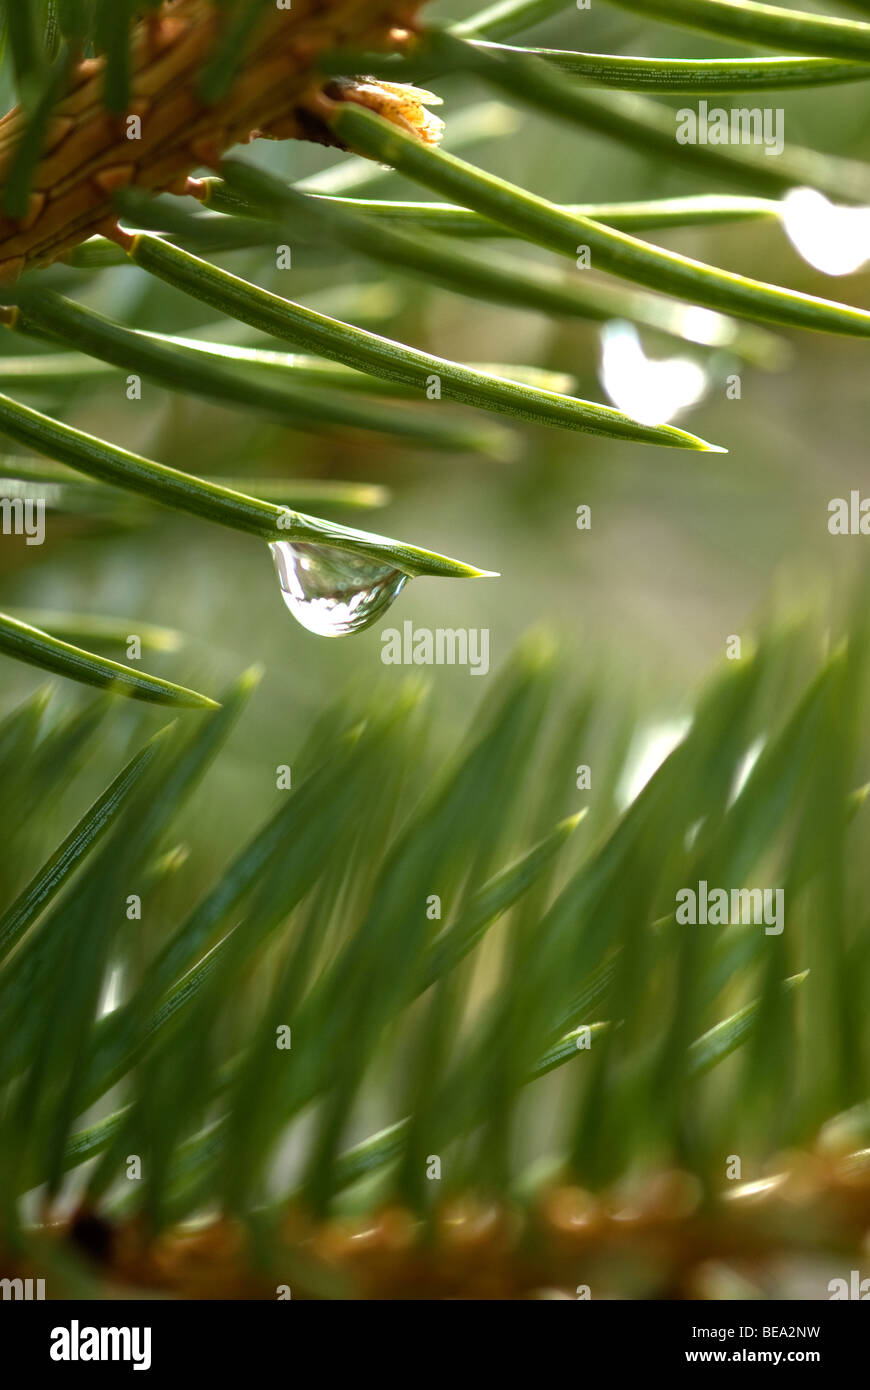 Close up of droplet of pure water on pine tree needle - Stock Image